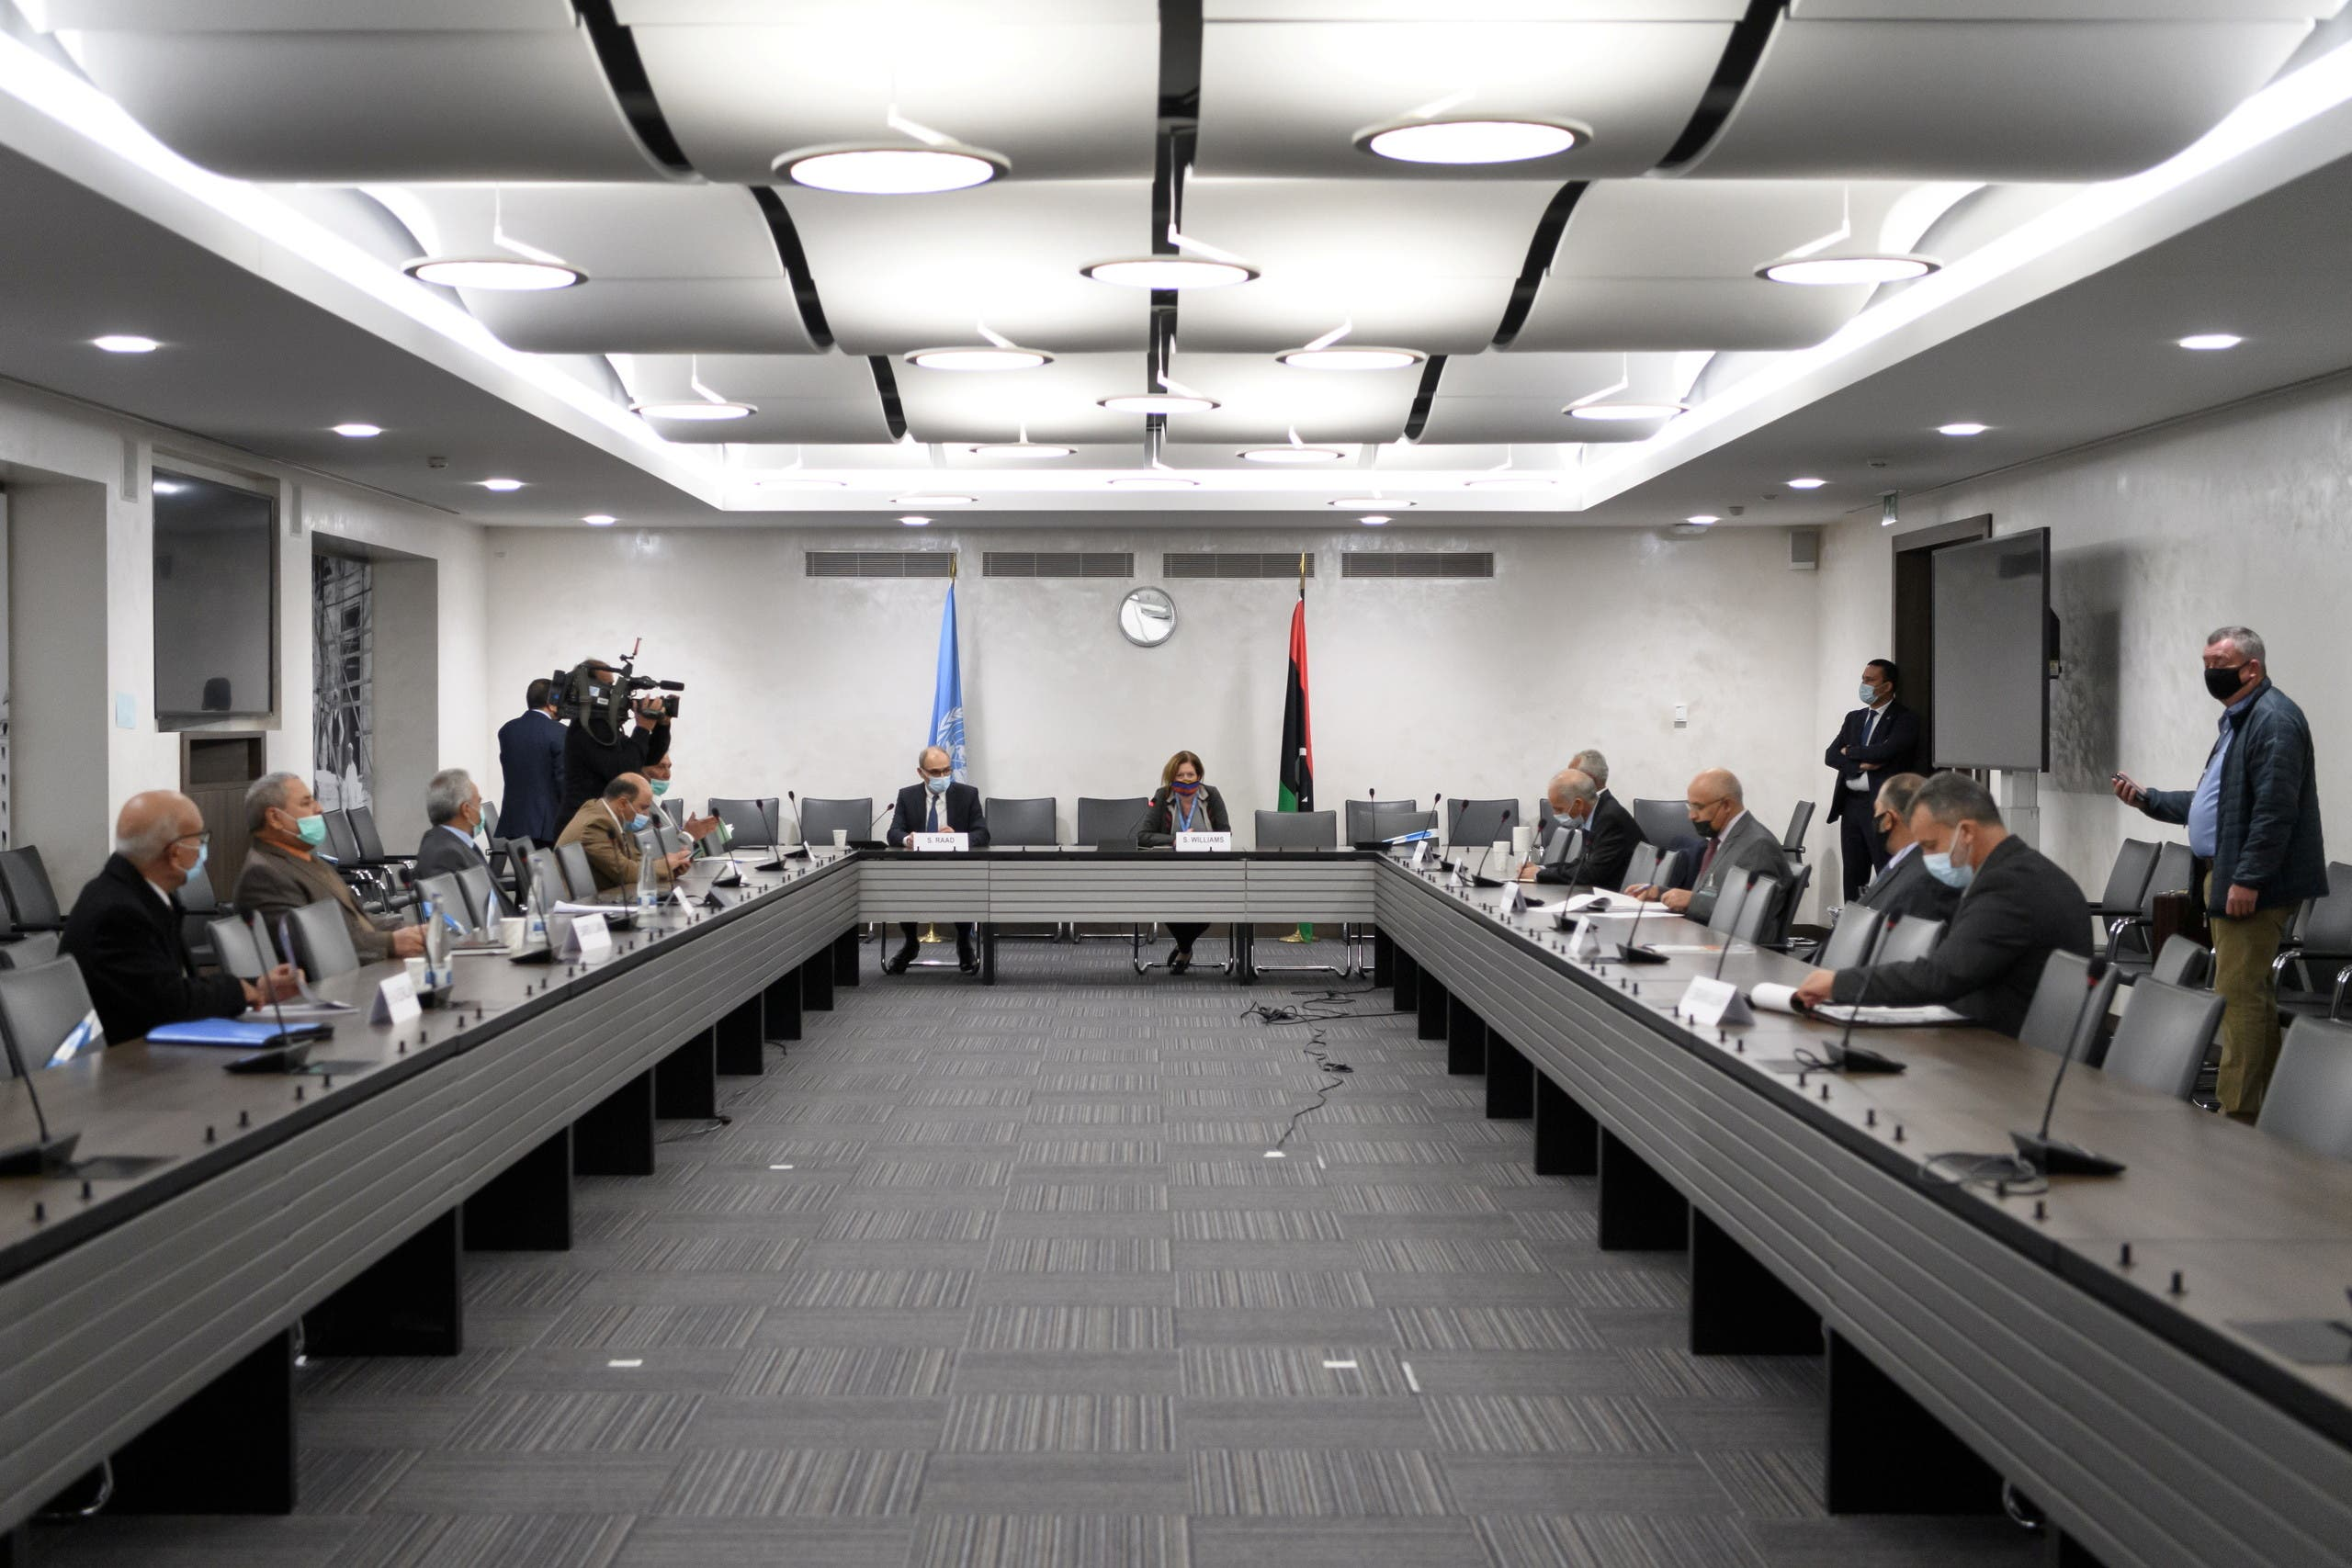 A general view of the talks between the rival factions in the Libya conflict at the United Nations offices in Geneva, Switzerland October 20, 2020 . Fabrice Coffrini/Pool via REUTERS